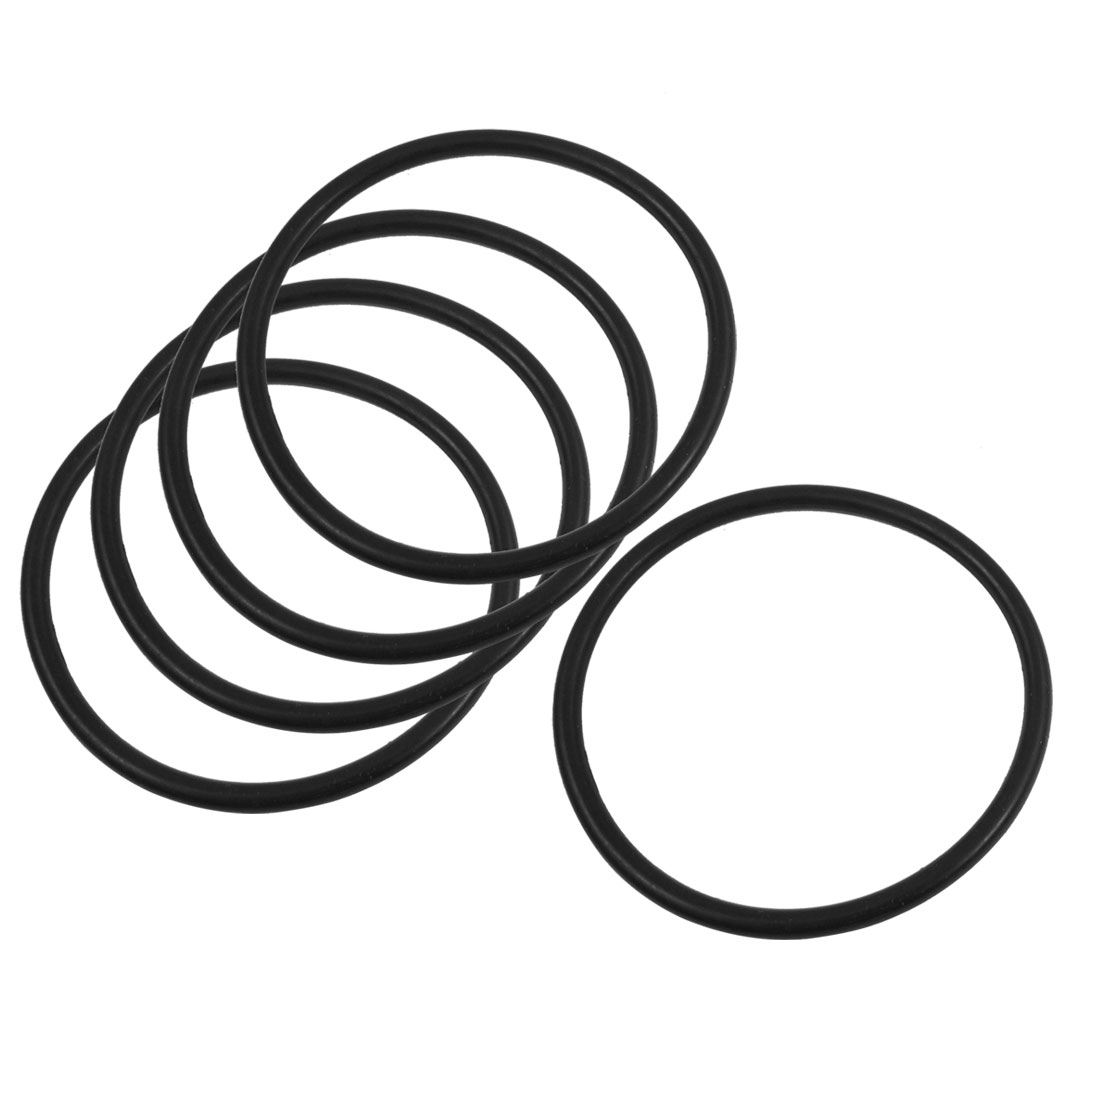 5 Pcs 90mm x 5mm Rubber Sealing Washers Oil Filter O Rings Black